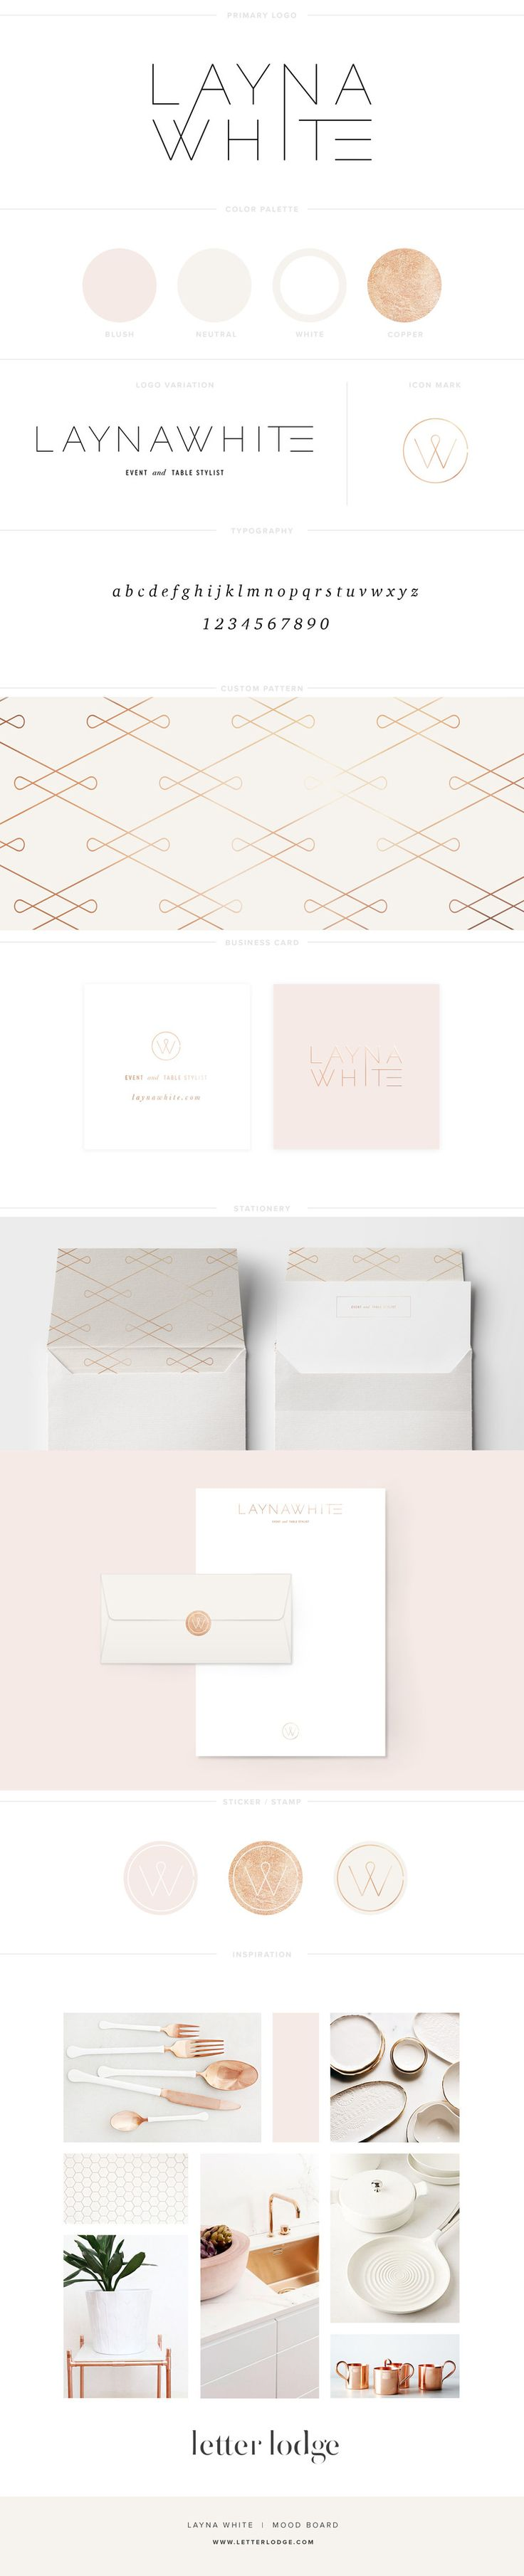 brand board modern logo design event stylist tablescape wedding styling gold copper rose gold rose quarts botanical white simple lifestyle blogger photographer graphic design letter lodge